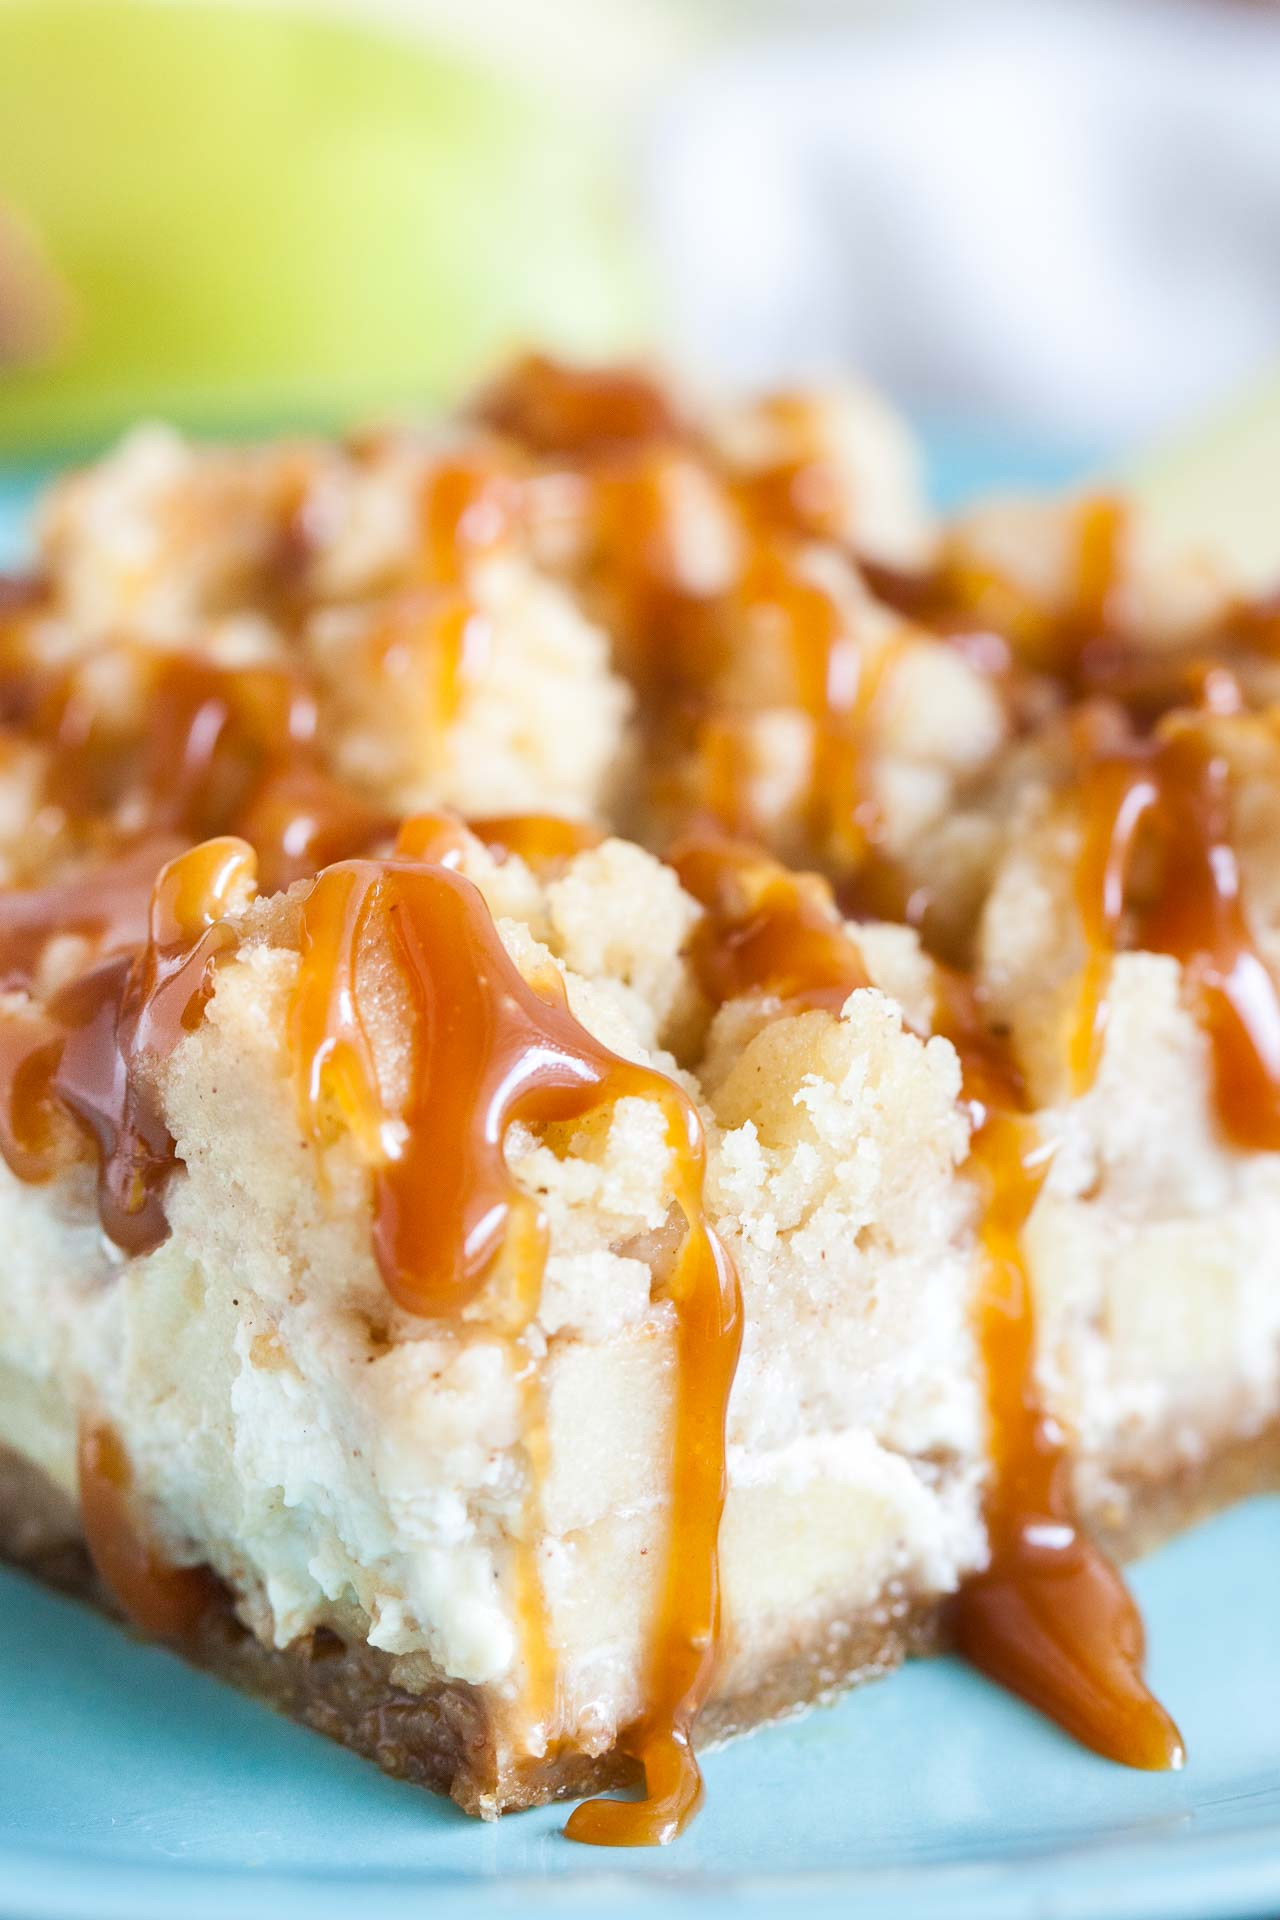 Caramel Apple Cheesecake Bars have three delicious layers and are a perfect fall dessert! A graham cracker crust topped with a creamy cheesecake layer loaded with cinnamon spiced apples and cookie-like streusel and salted caramel on top.